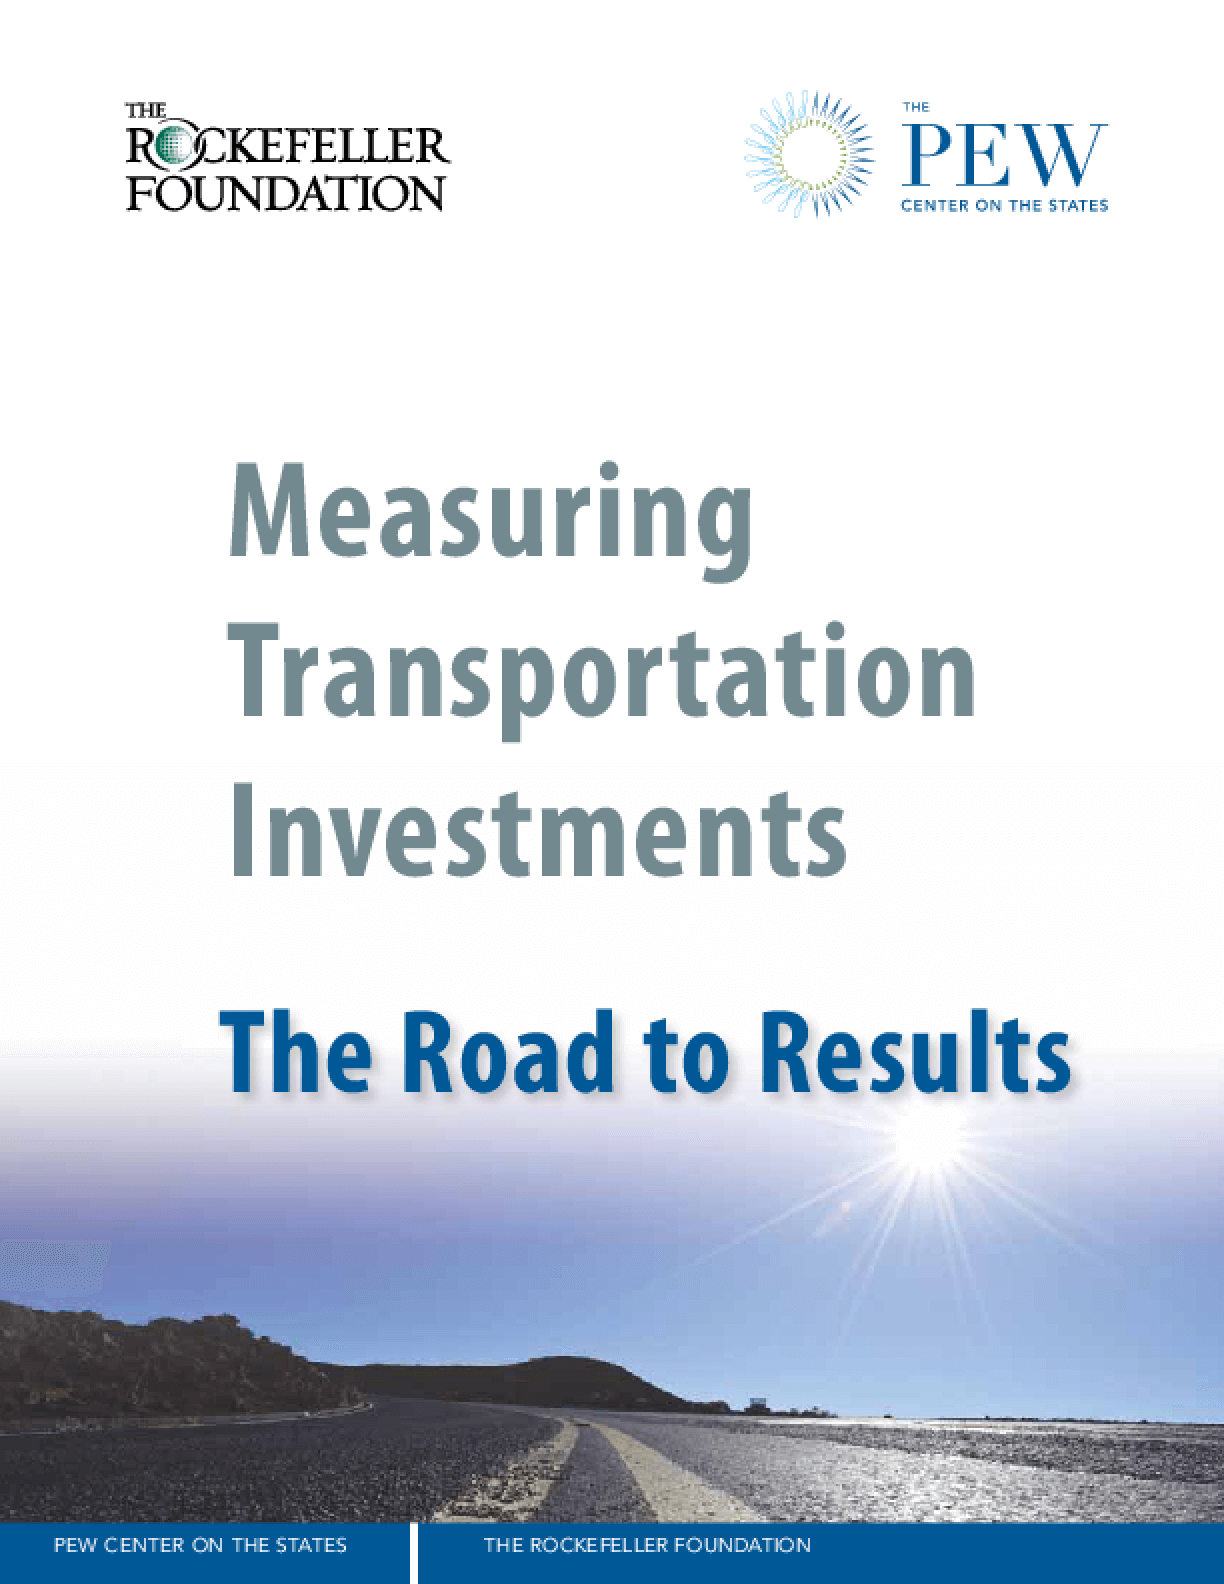 Measuring Transportation Investments: The Road to Results